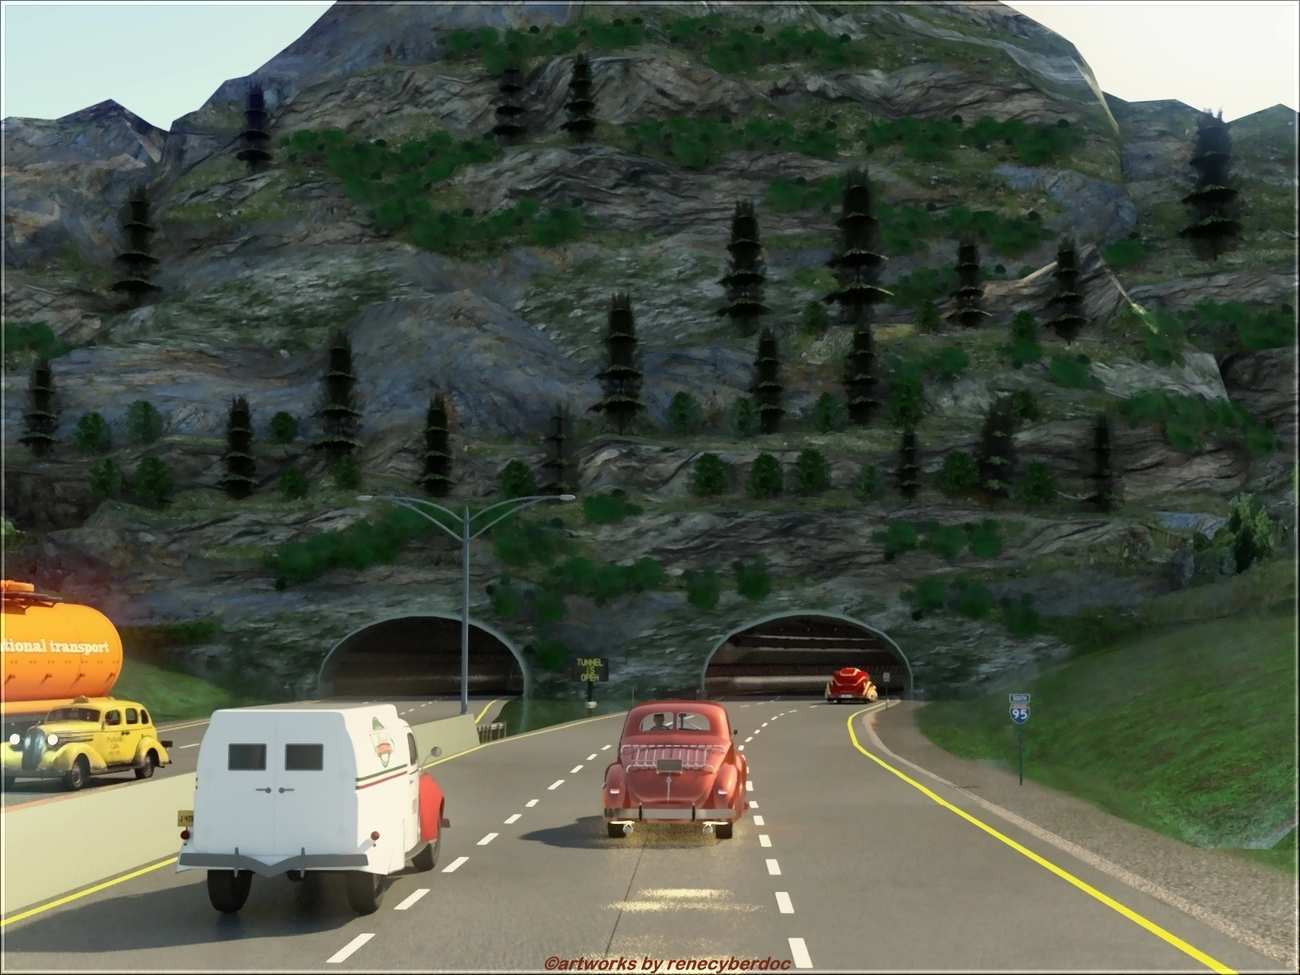 Tunnel Traffic by renecyberdoc